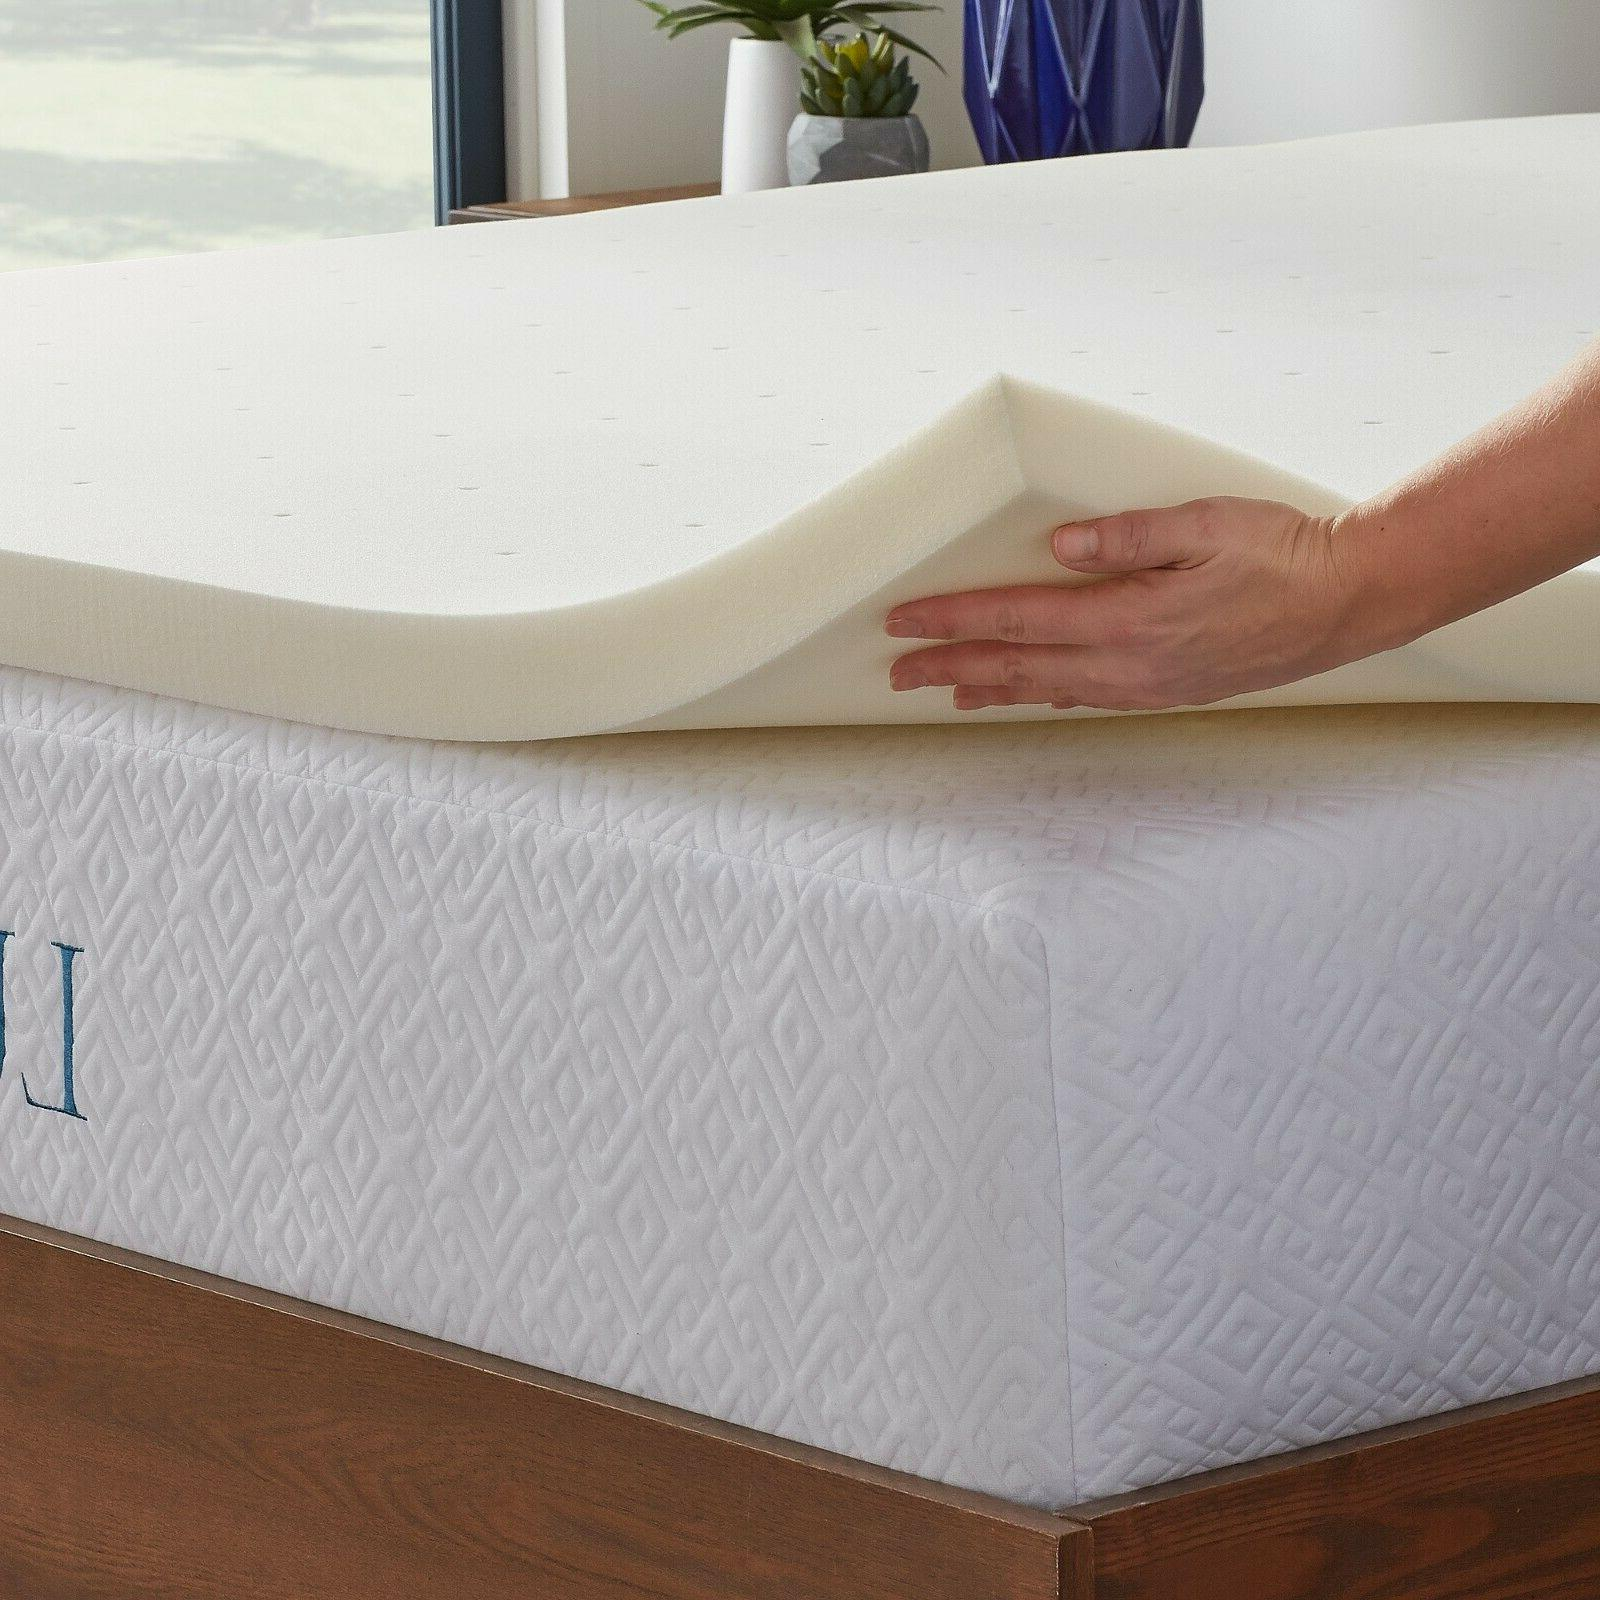 LUCID 2 Inch Traditional Ventilated Foam Topper - Breathable